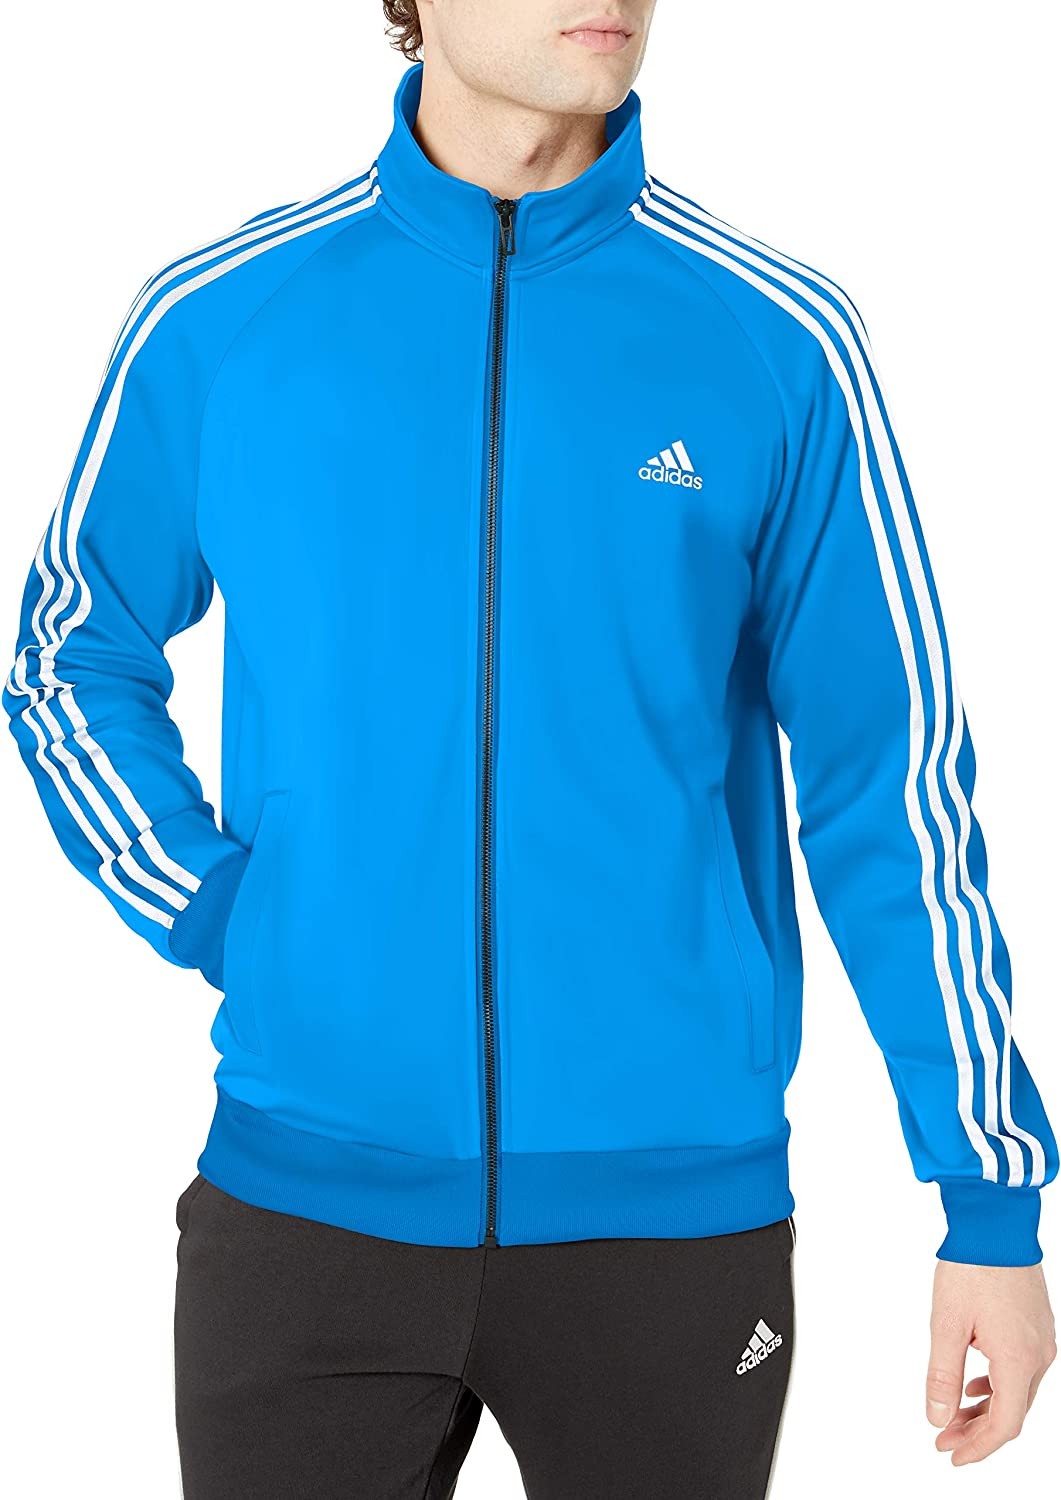 adidas essentials 3 stripes tricot jacket men's